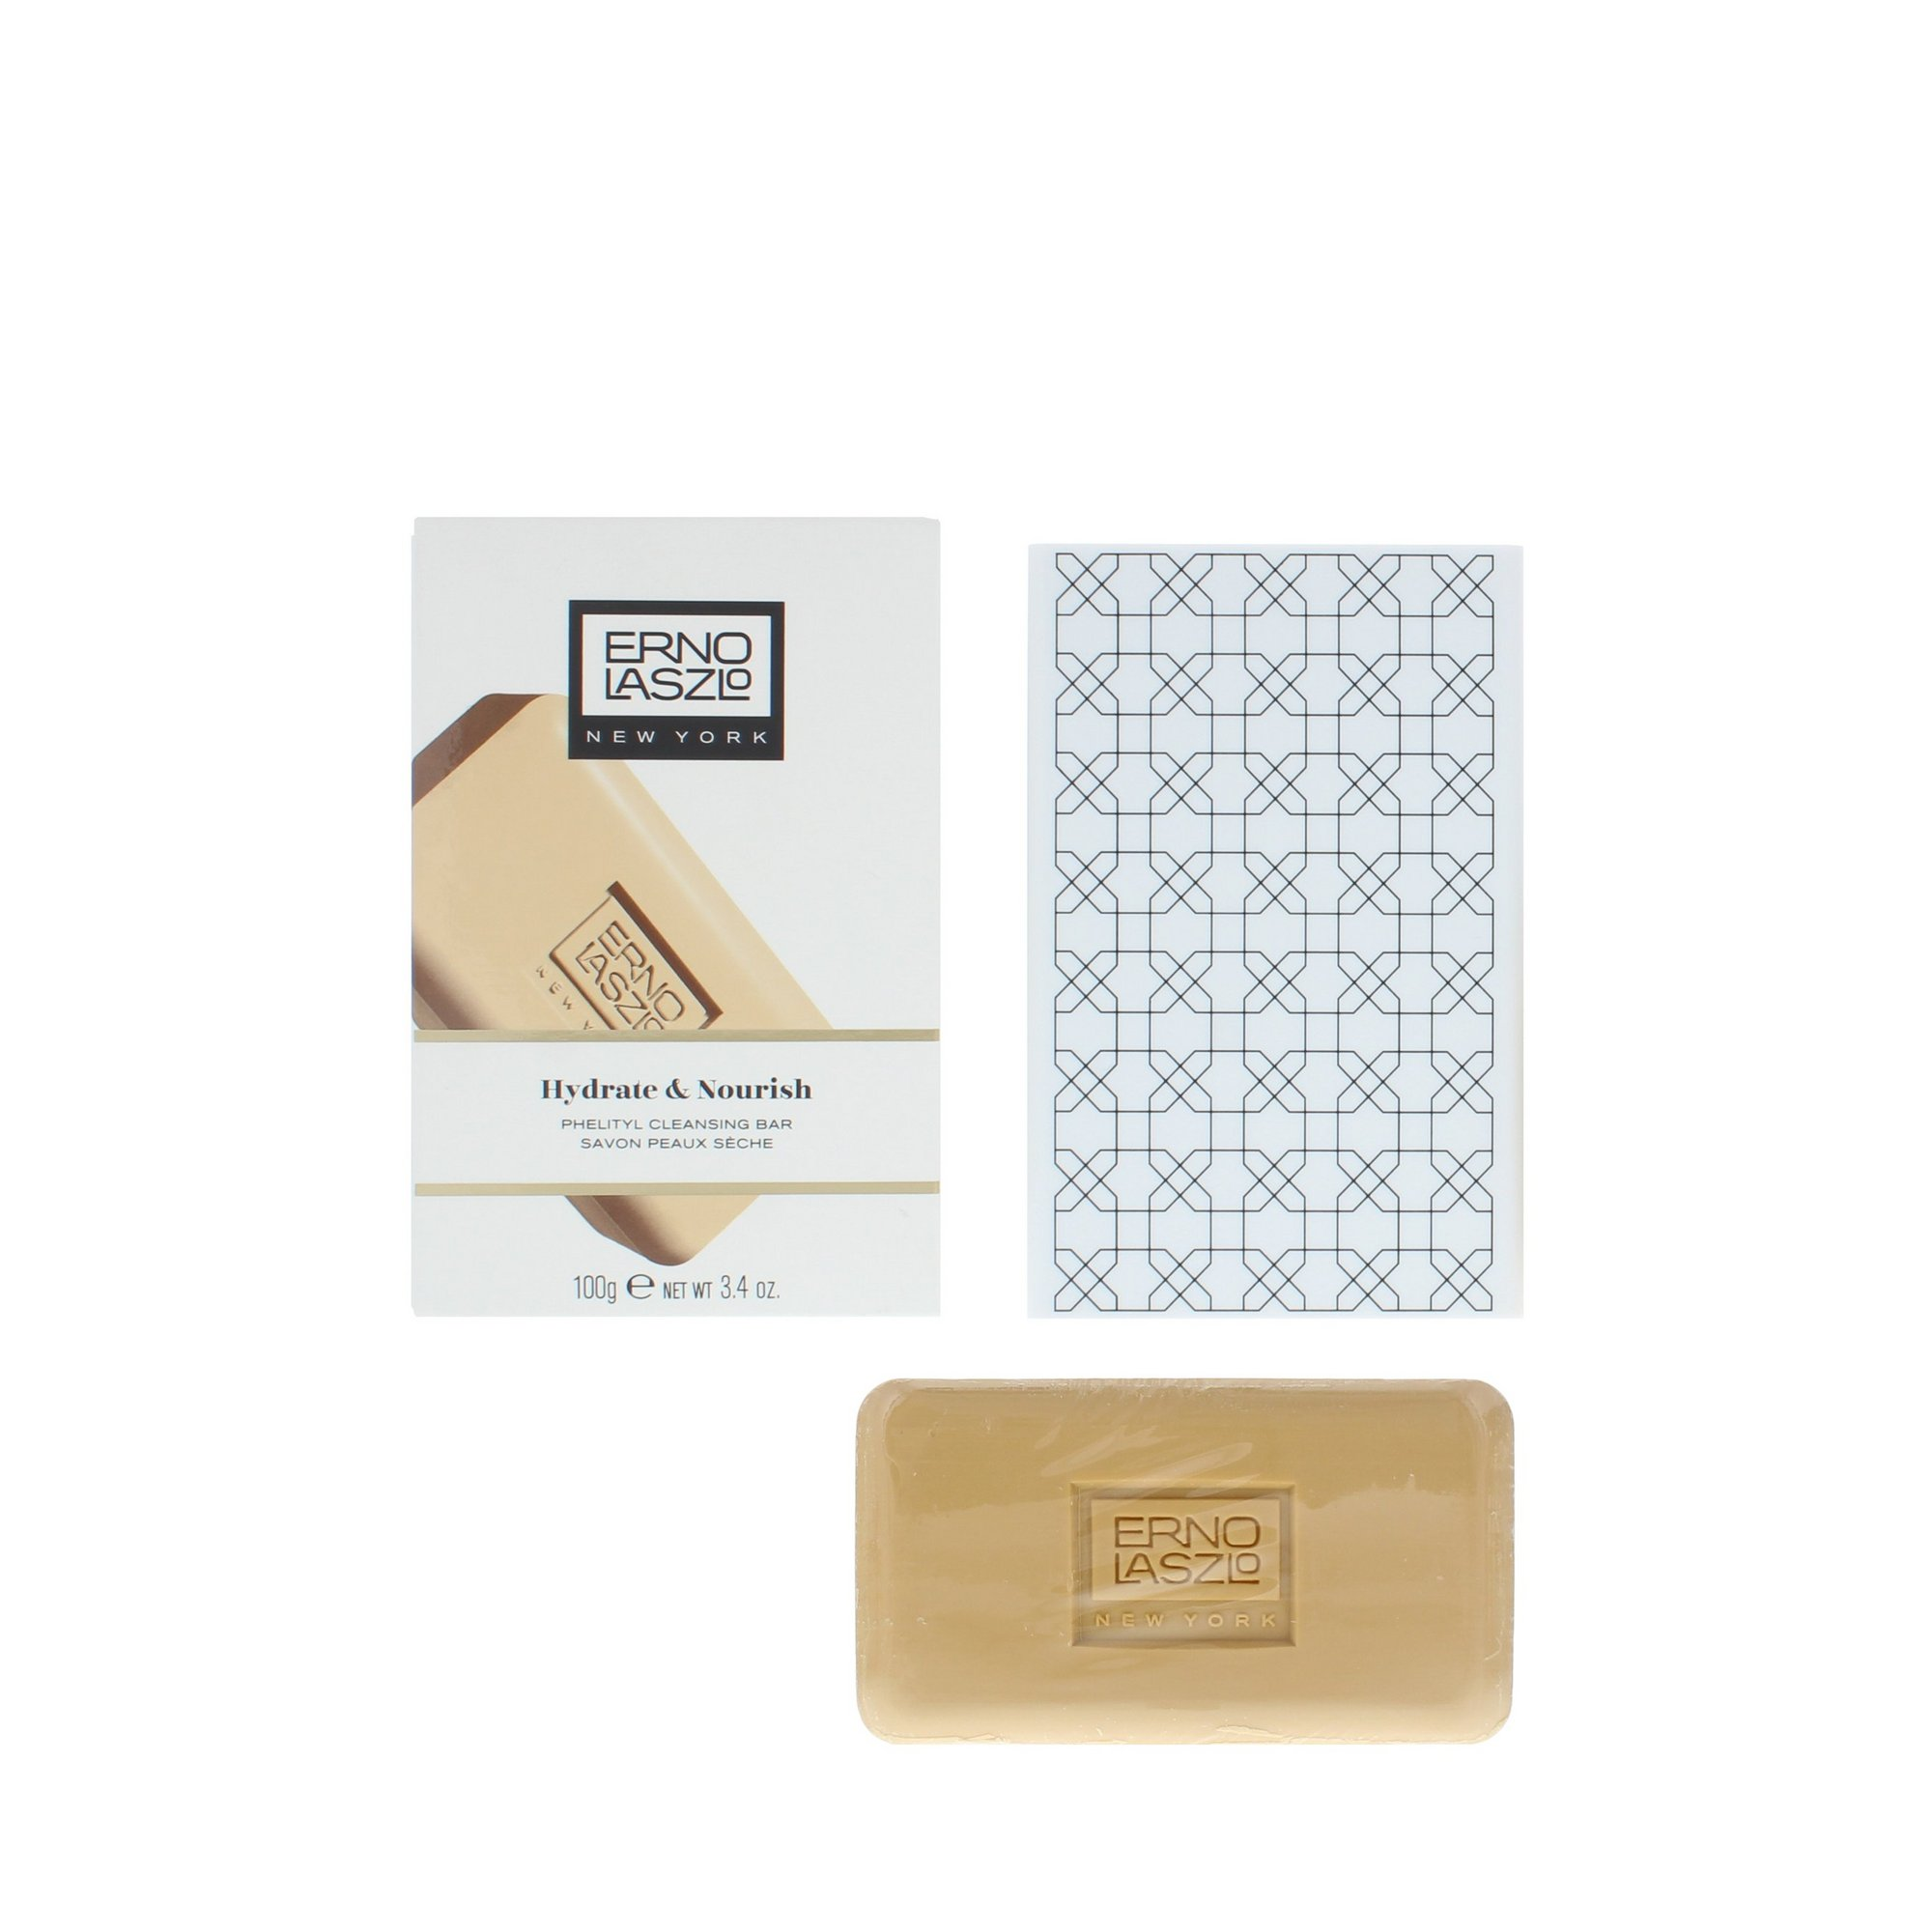 Image of Erno Laszlo Hydrate and Nourish Phelityl Cleansing Bar